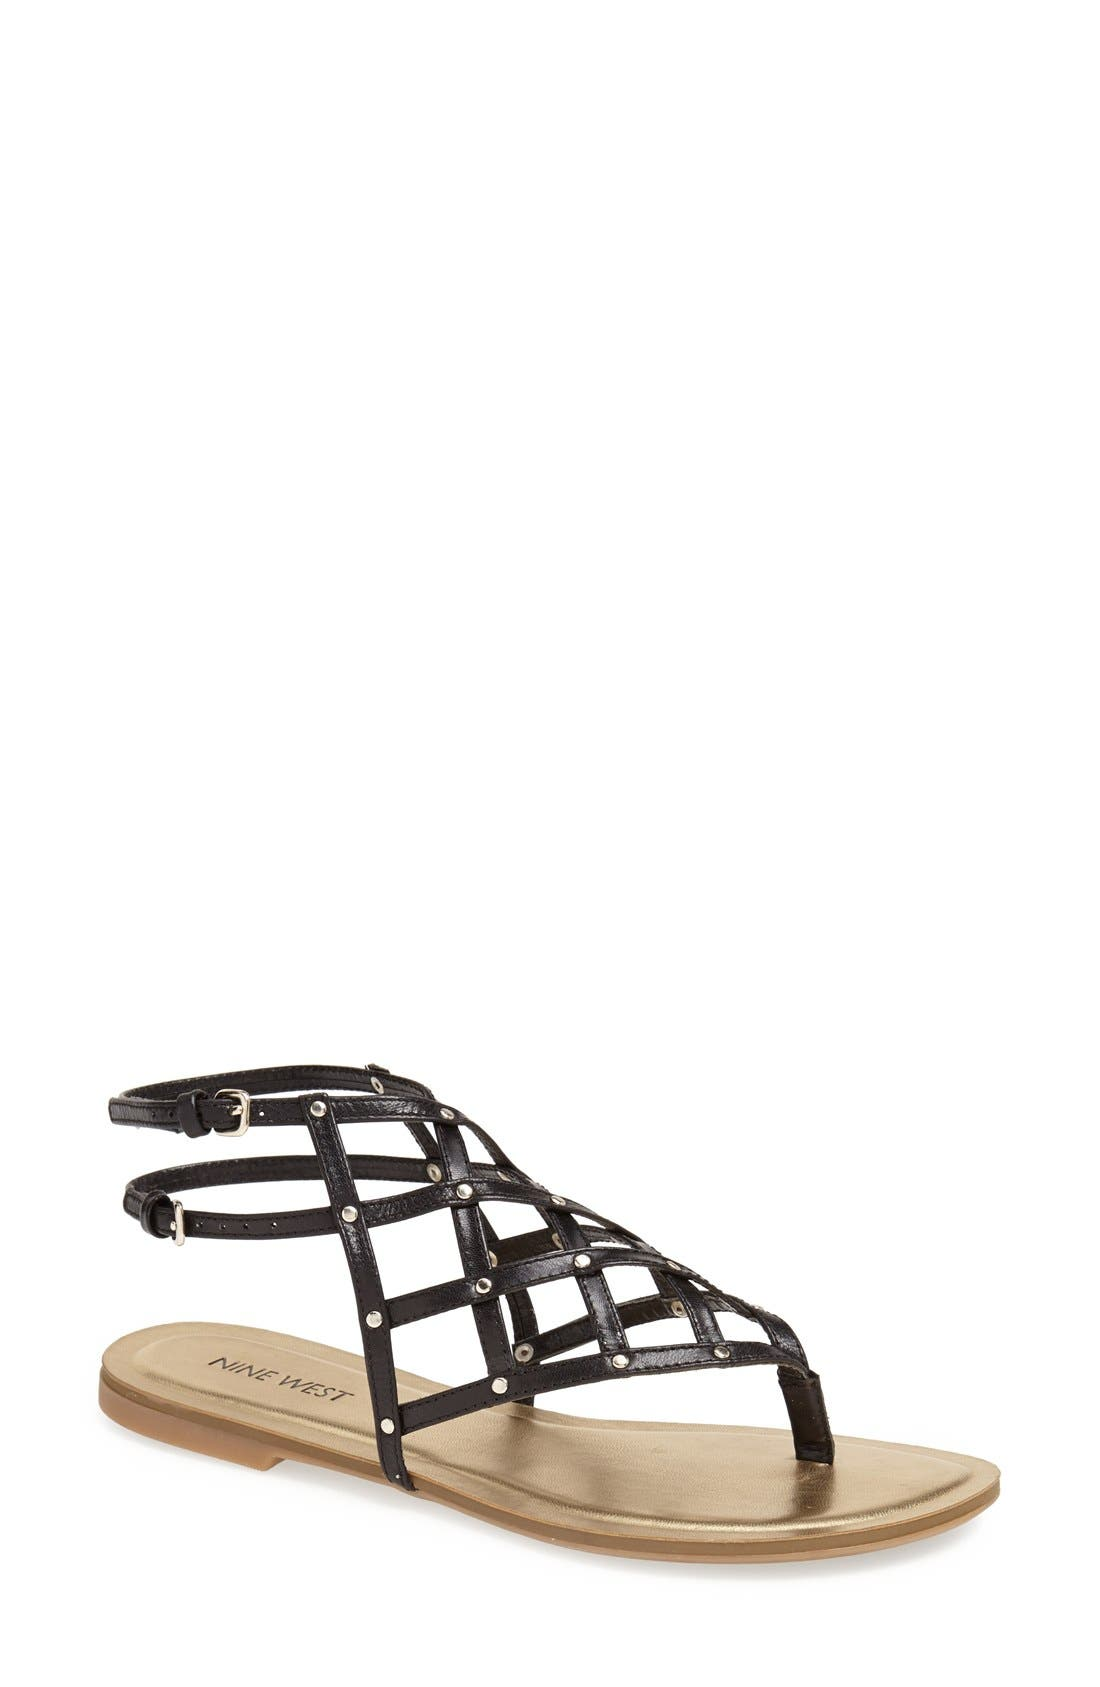 Main Image - Nine West 'Plaidperfect' Sandal